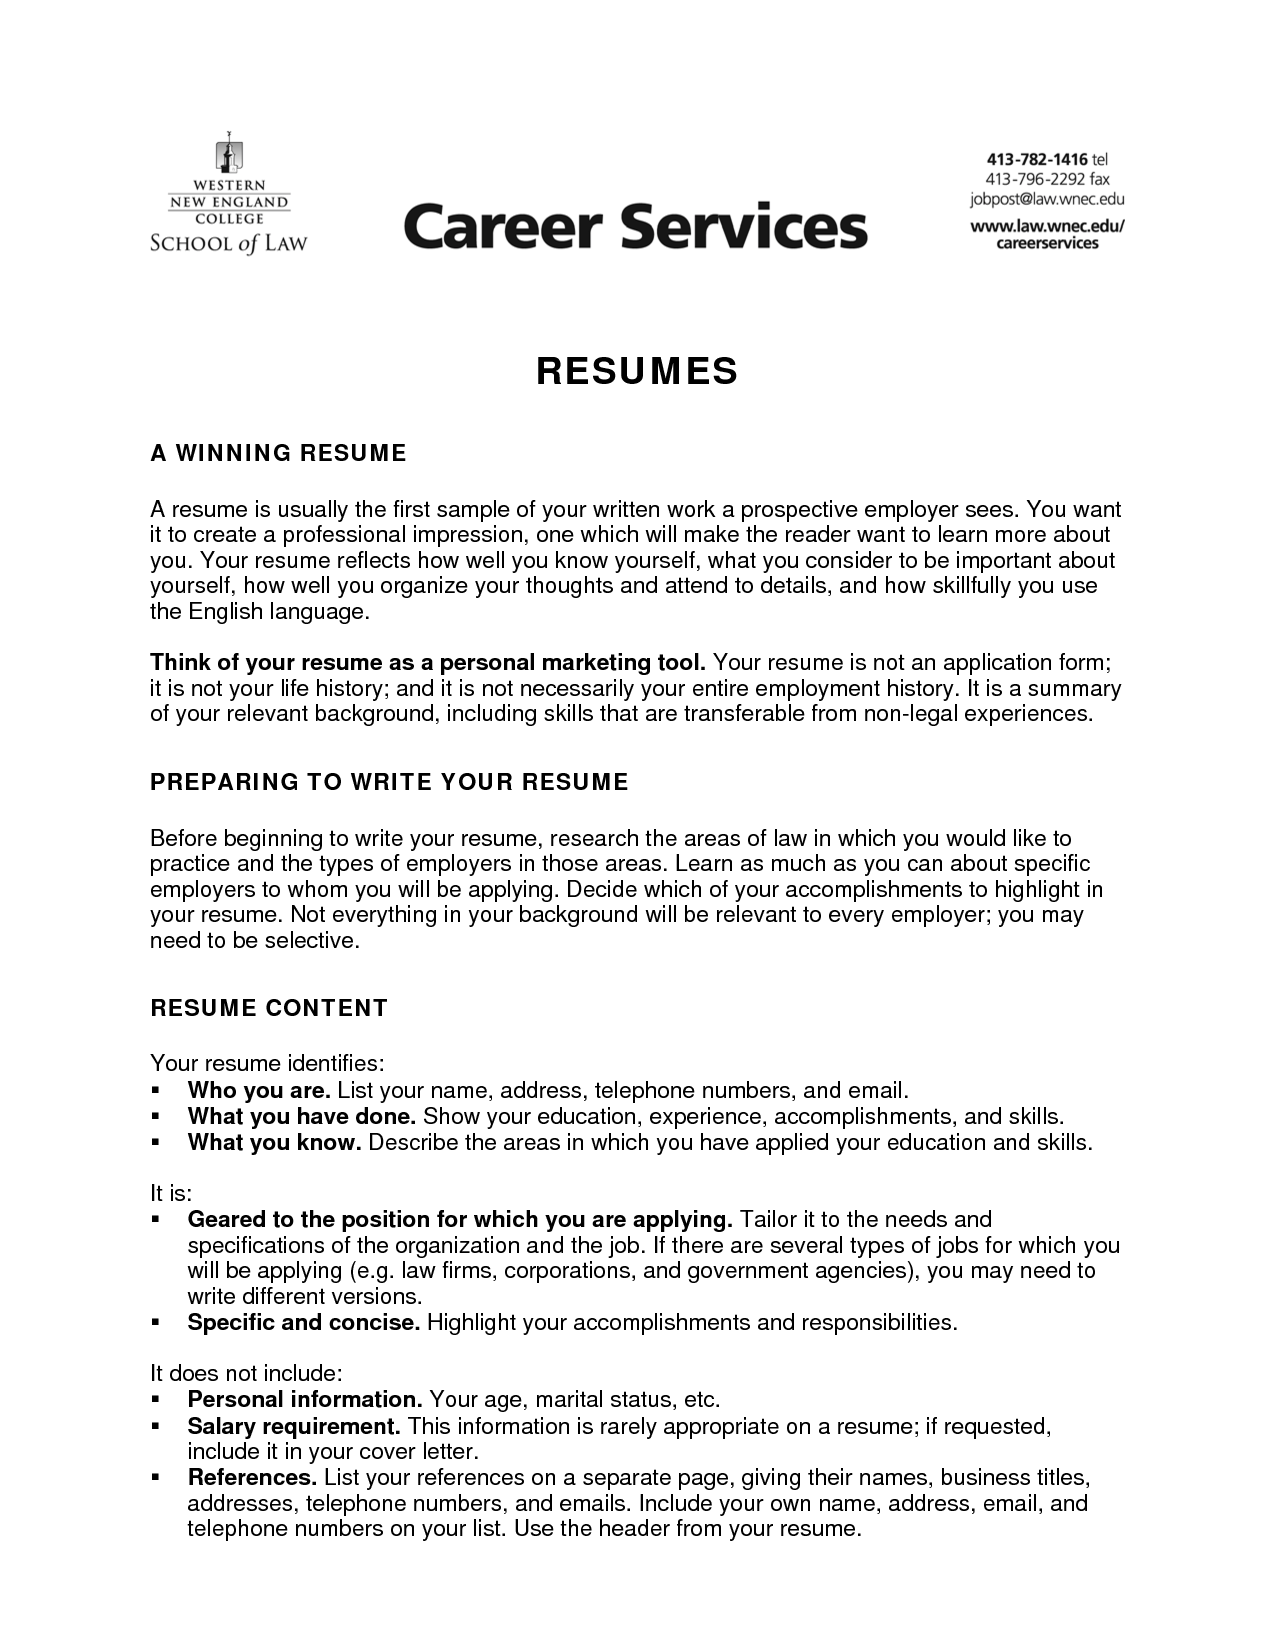 sample commercial refrigeration technician resume - Google Search ...